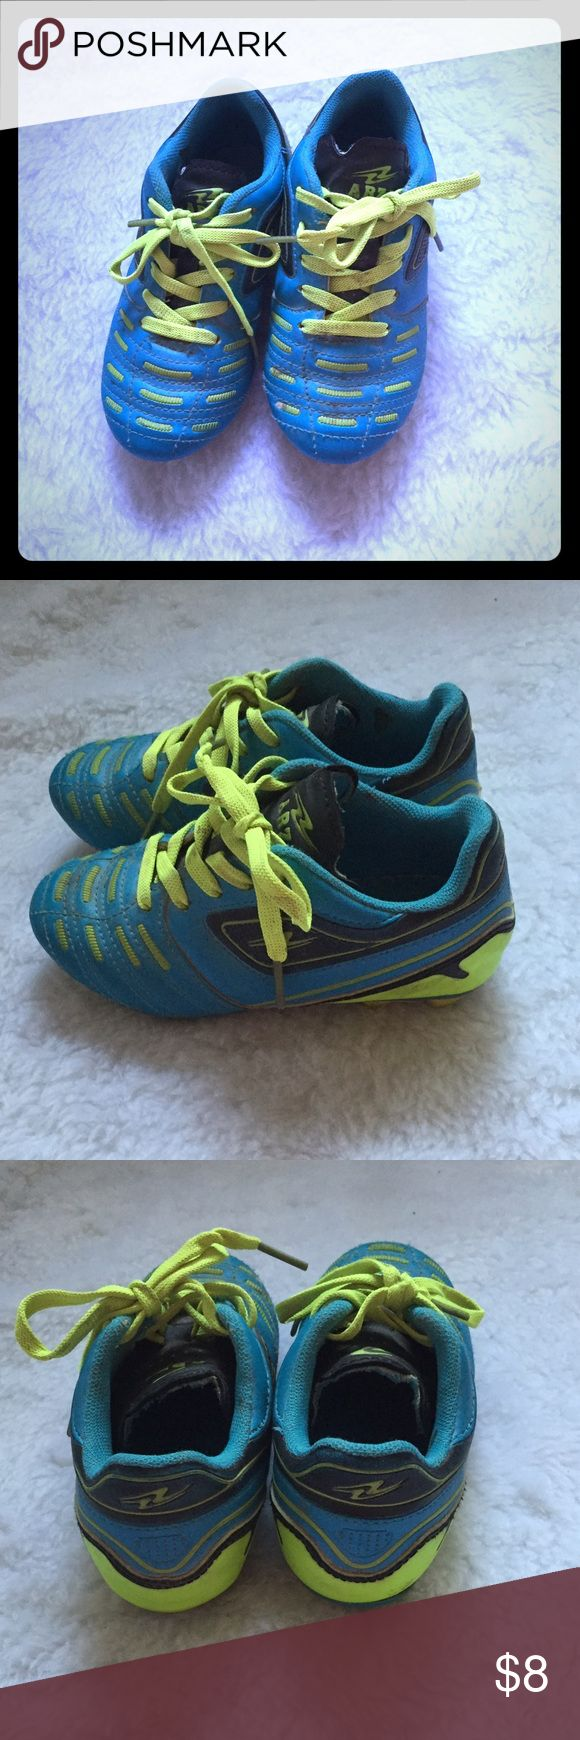 Toddler soccer shoes size 10.5 In good pre owned condition. Toddler soccer shoes Shoes